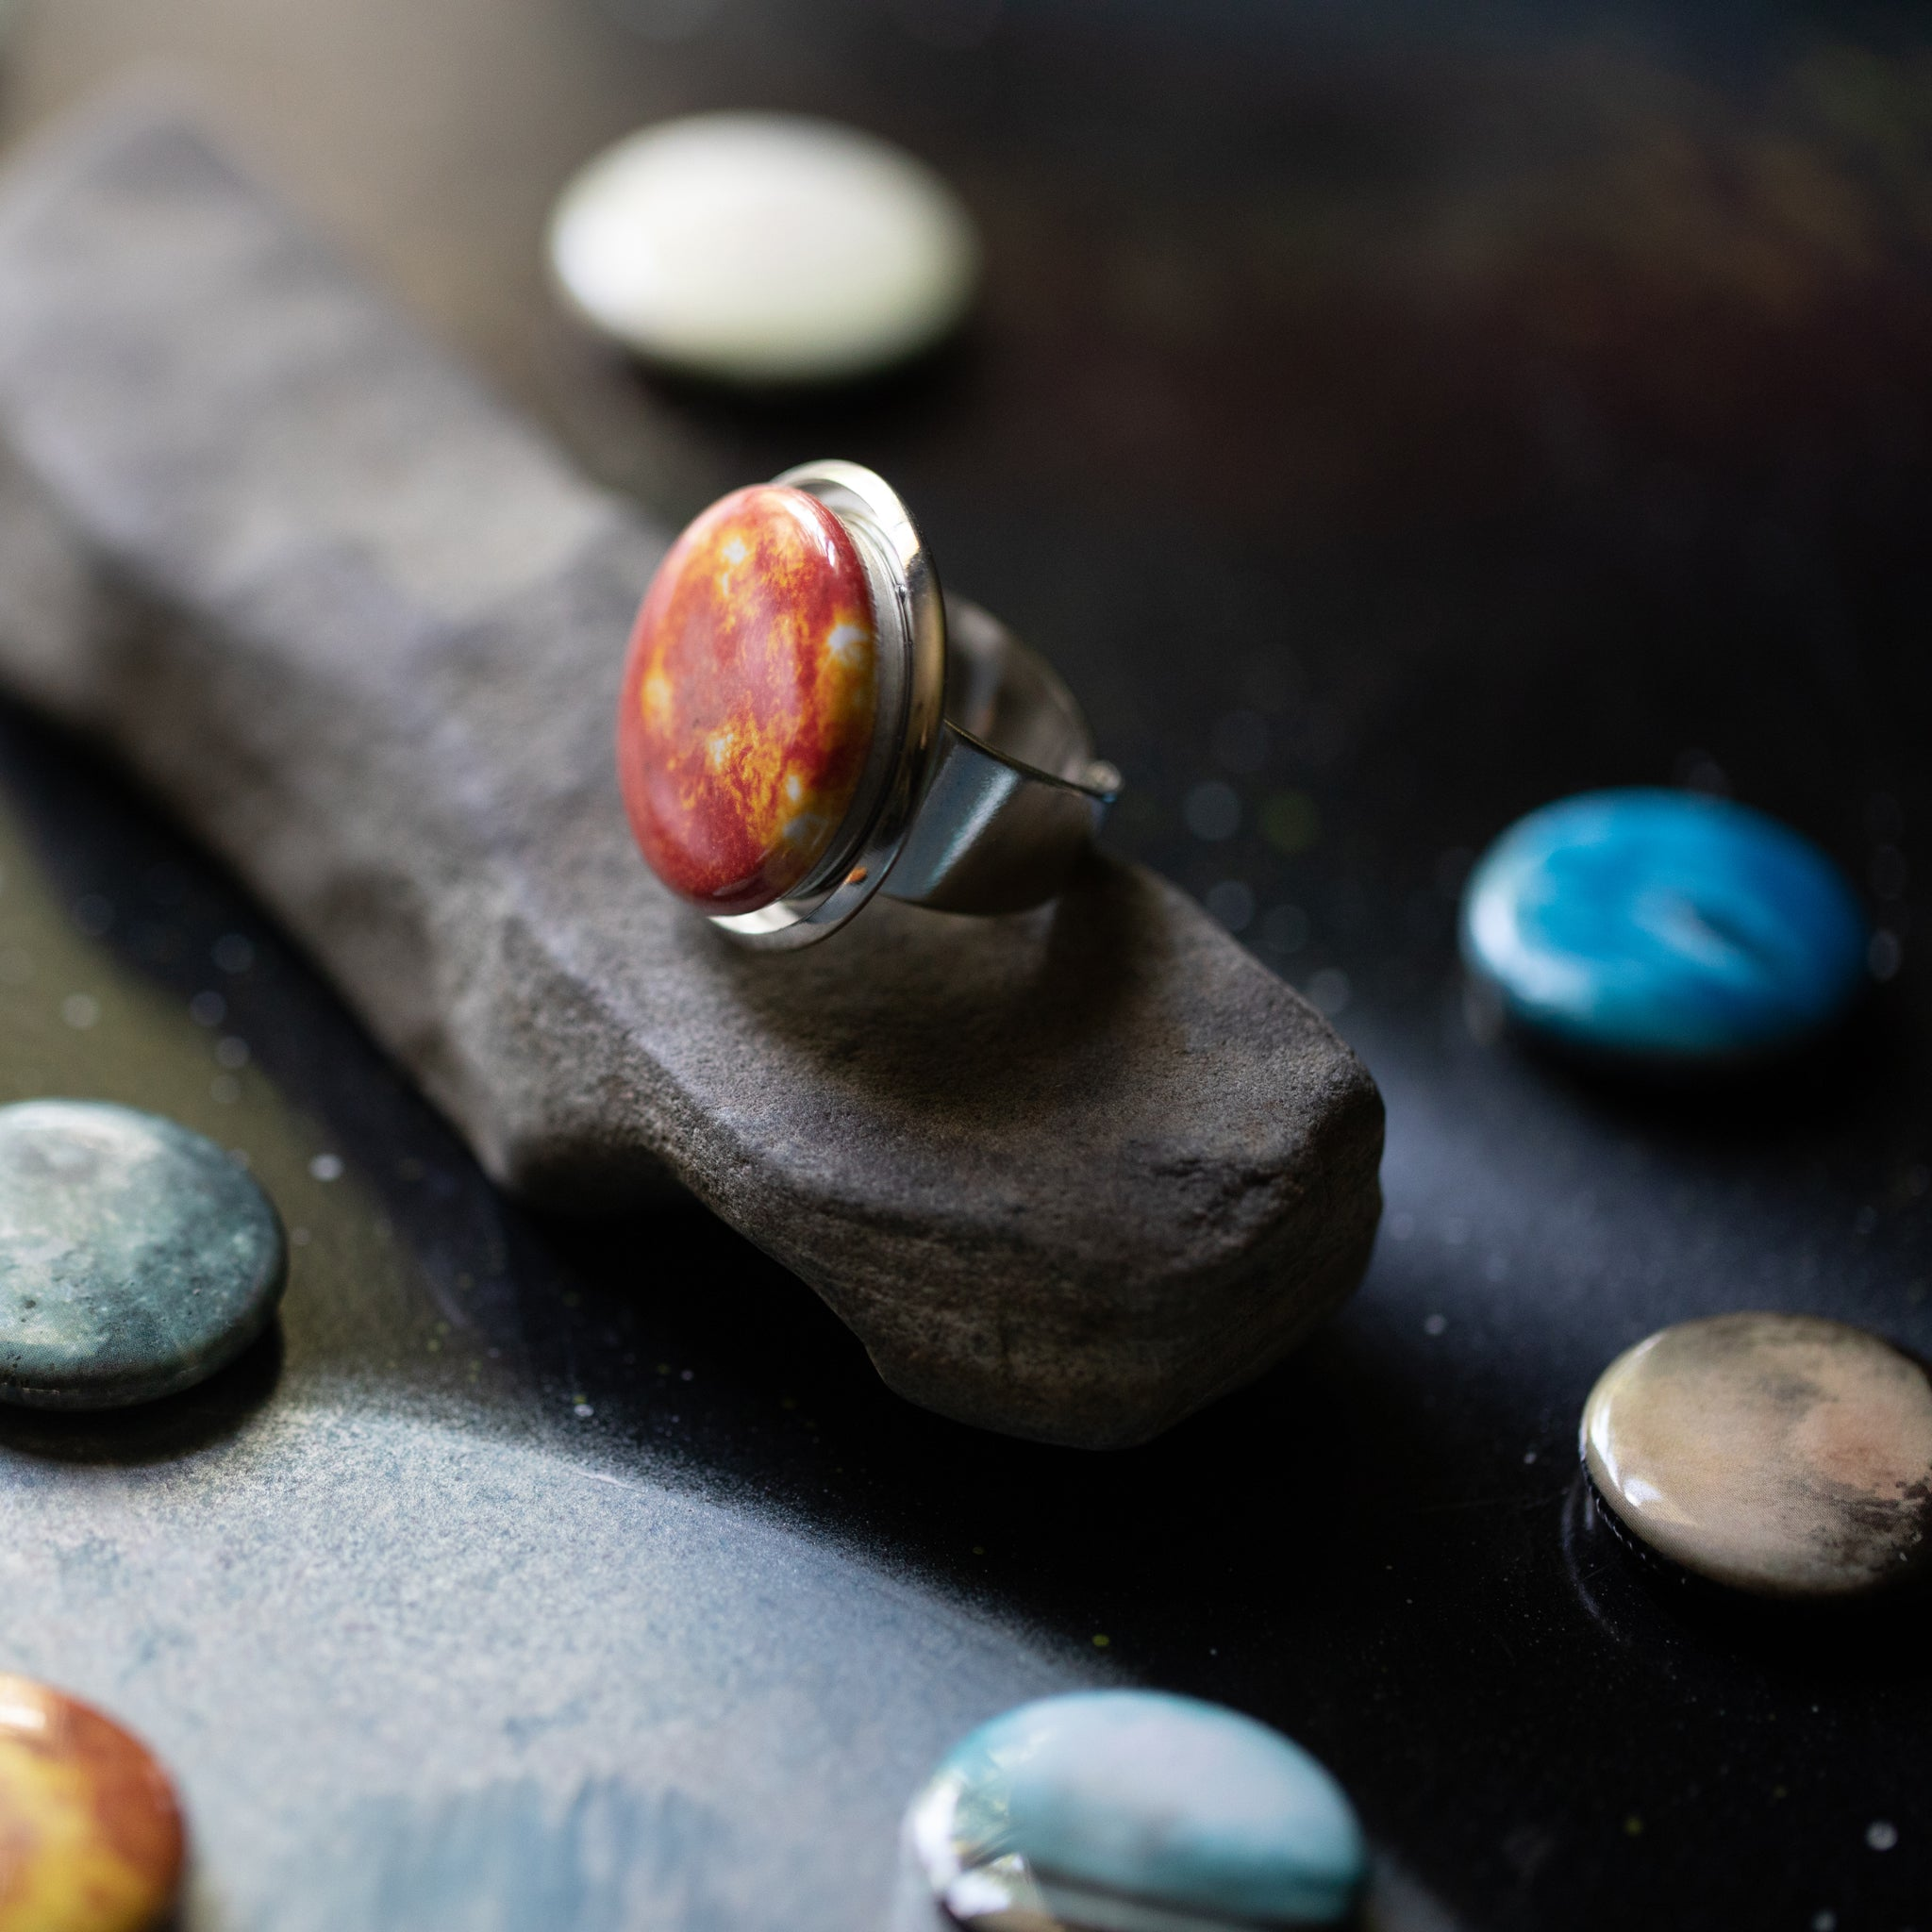 Magnetic Interchangeable Cocktail Ring with the Solar System - 11 Planets, Sun, Moon included - 11 rings in one, jewelry inspired by the cosmos handmade by Yugen Tribe